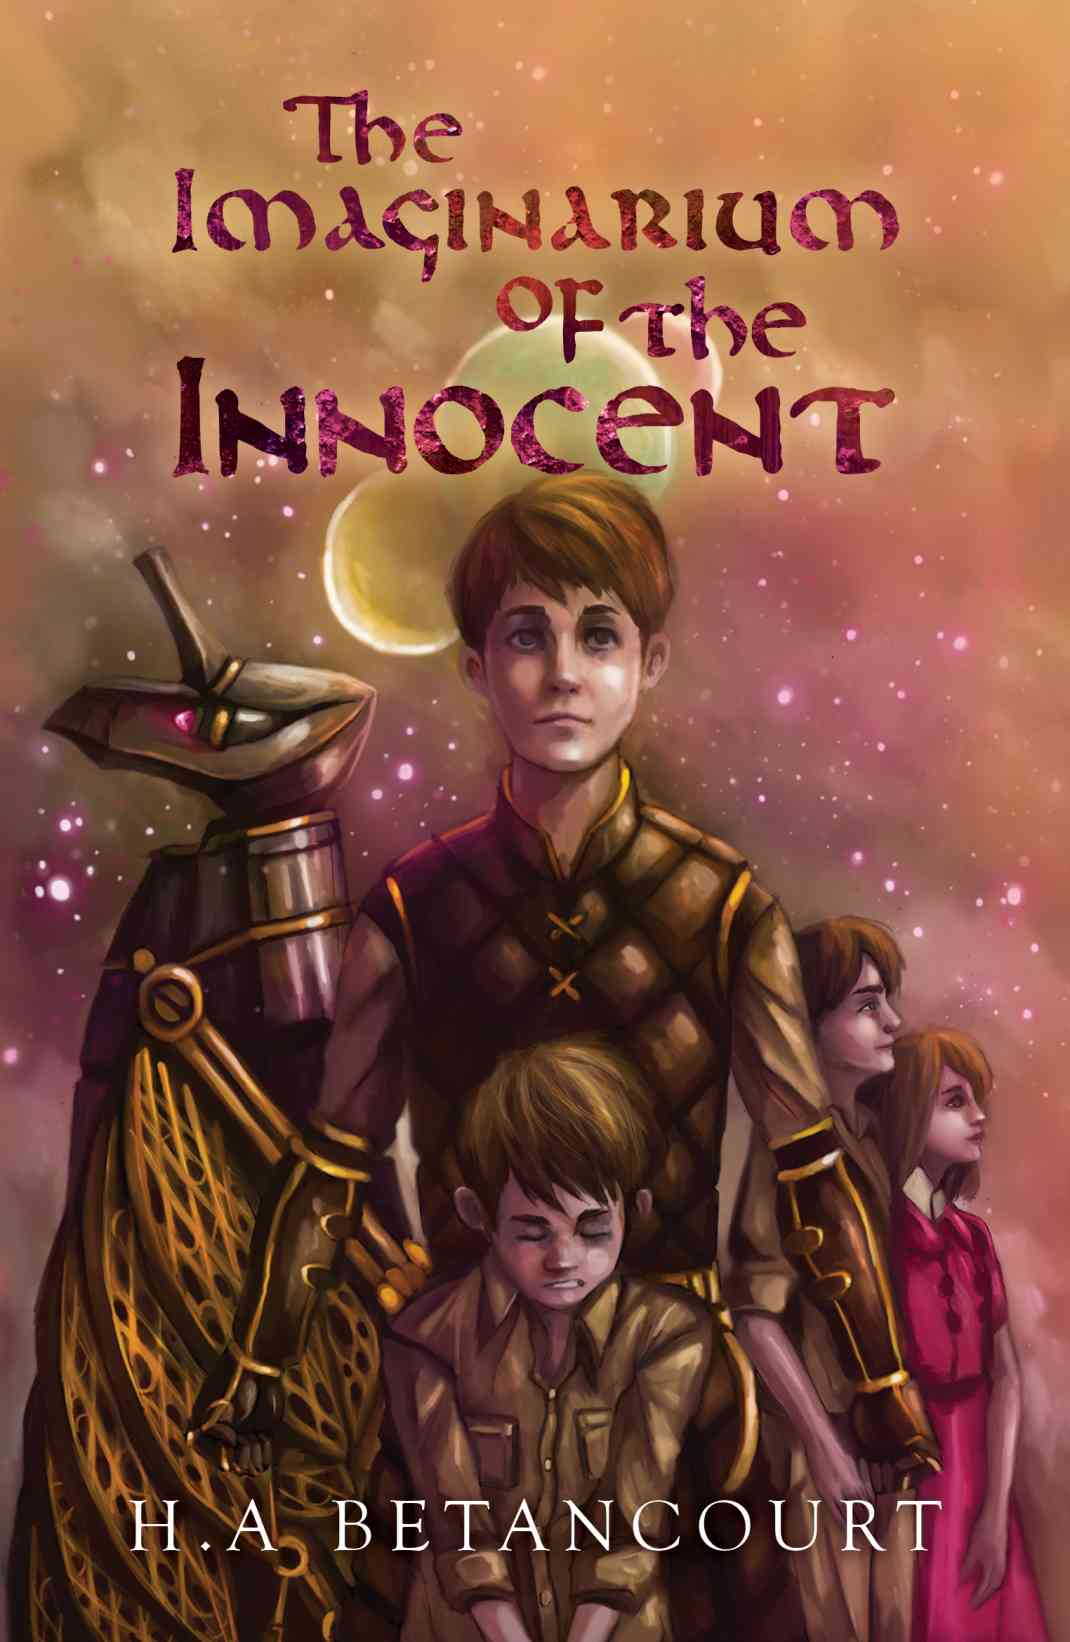 The Imaginarium of the Innocent